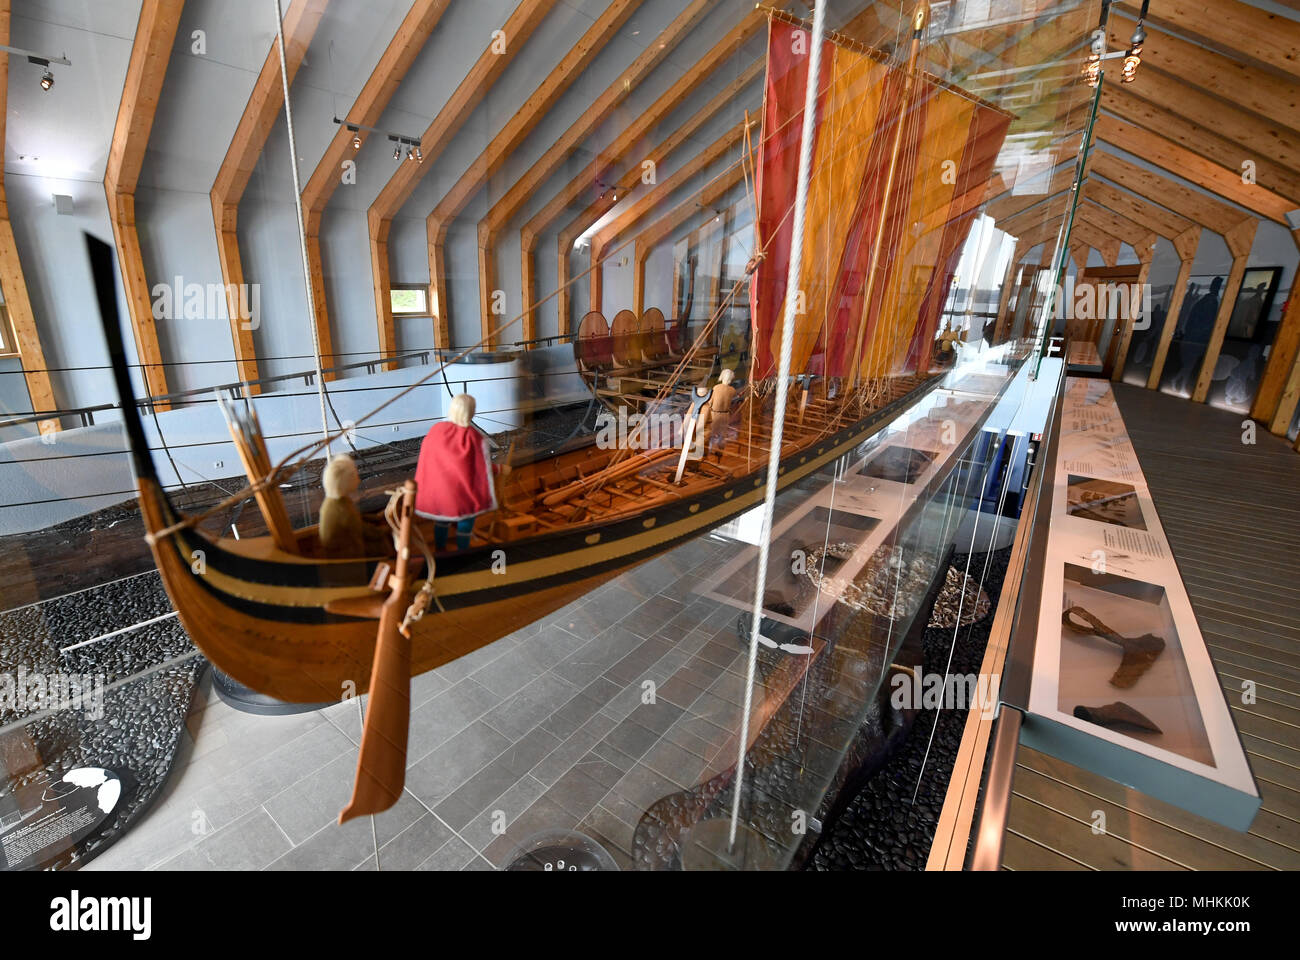 02 May 2018, Germany, Busdorf: A model of a Viking war ship standing in the exhibition of the Viking Museum Haithabu. The museum was closed for 18 months due to extensive renovation work and is to be reopened on 03 May 2018. Photo: Carsten Rehder/dpa - Stock Image